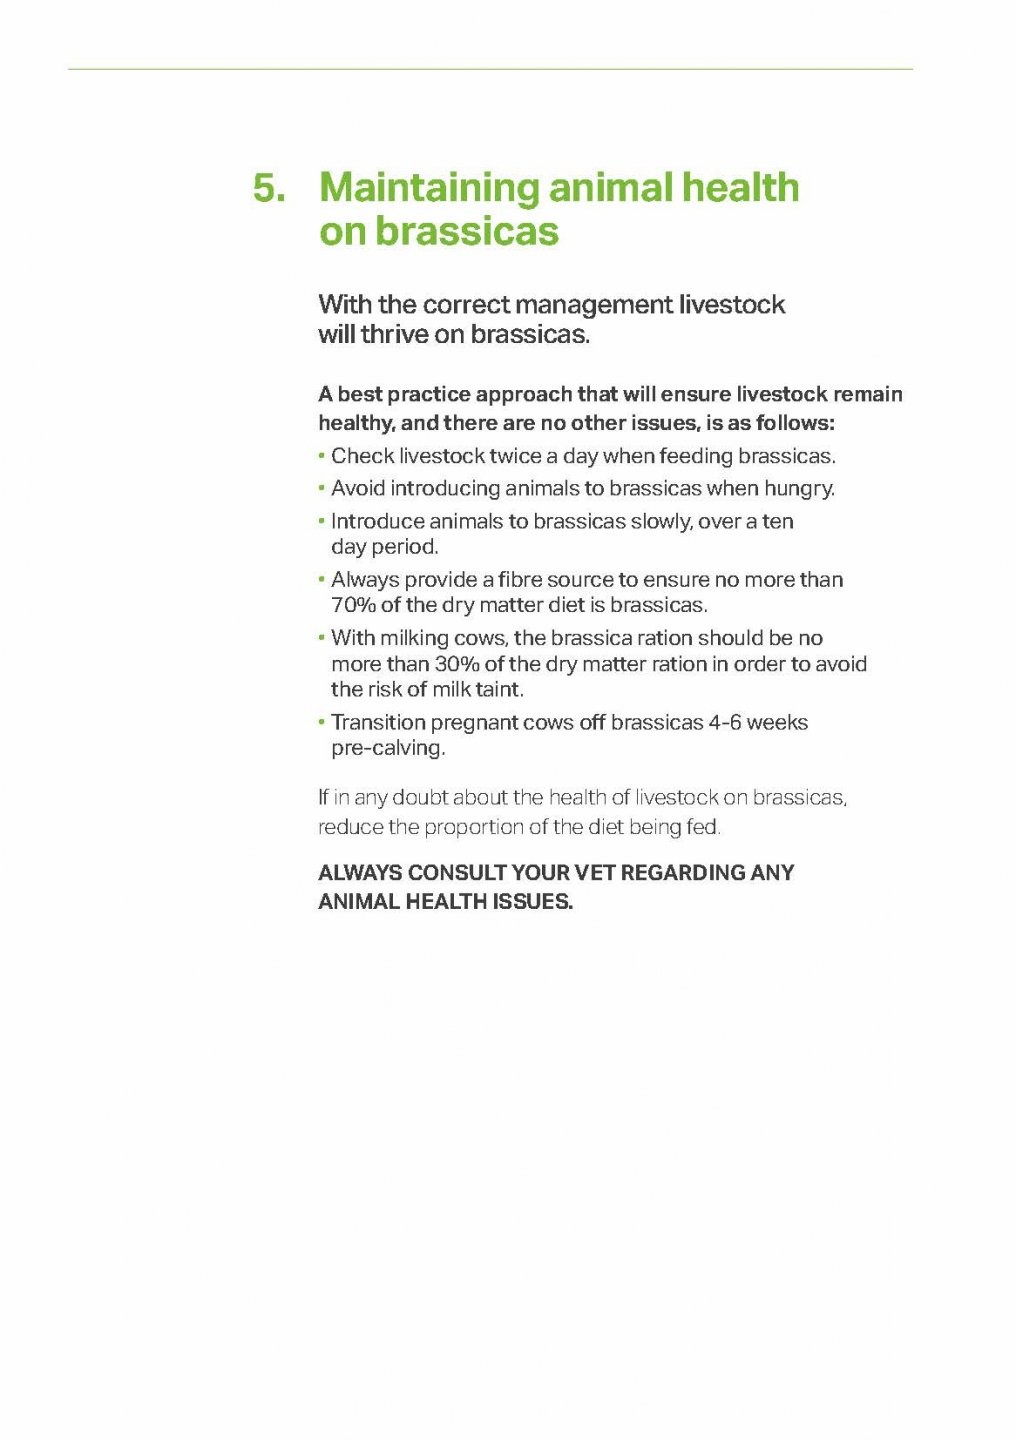 GGB_AGRI_107_Brassica_Growers_guide_2020_Page_14.jpg